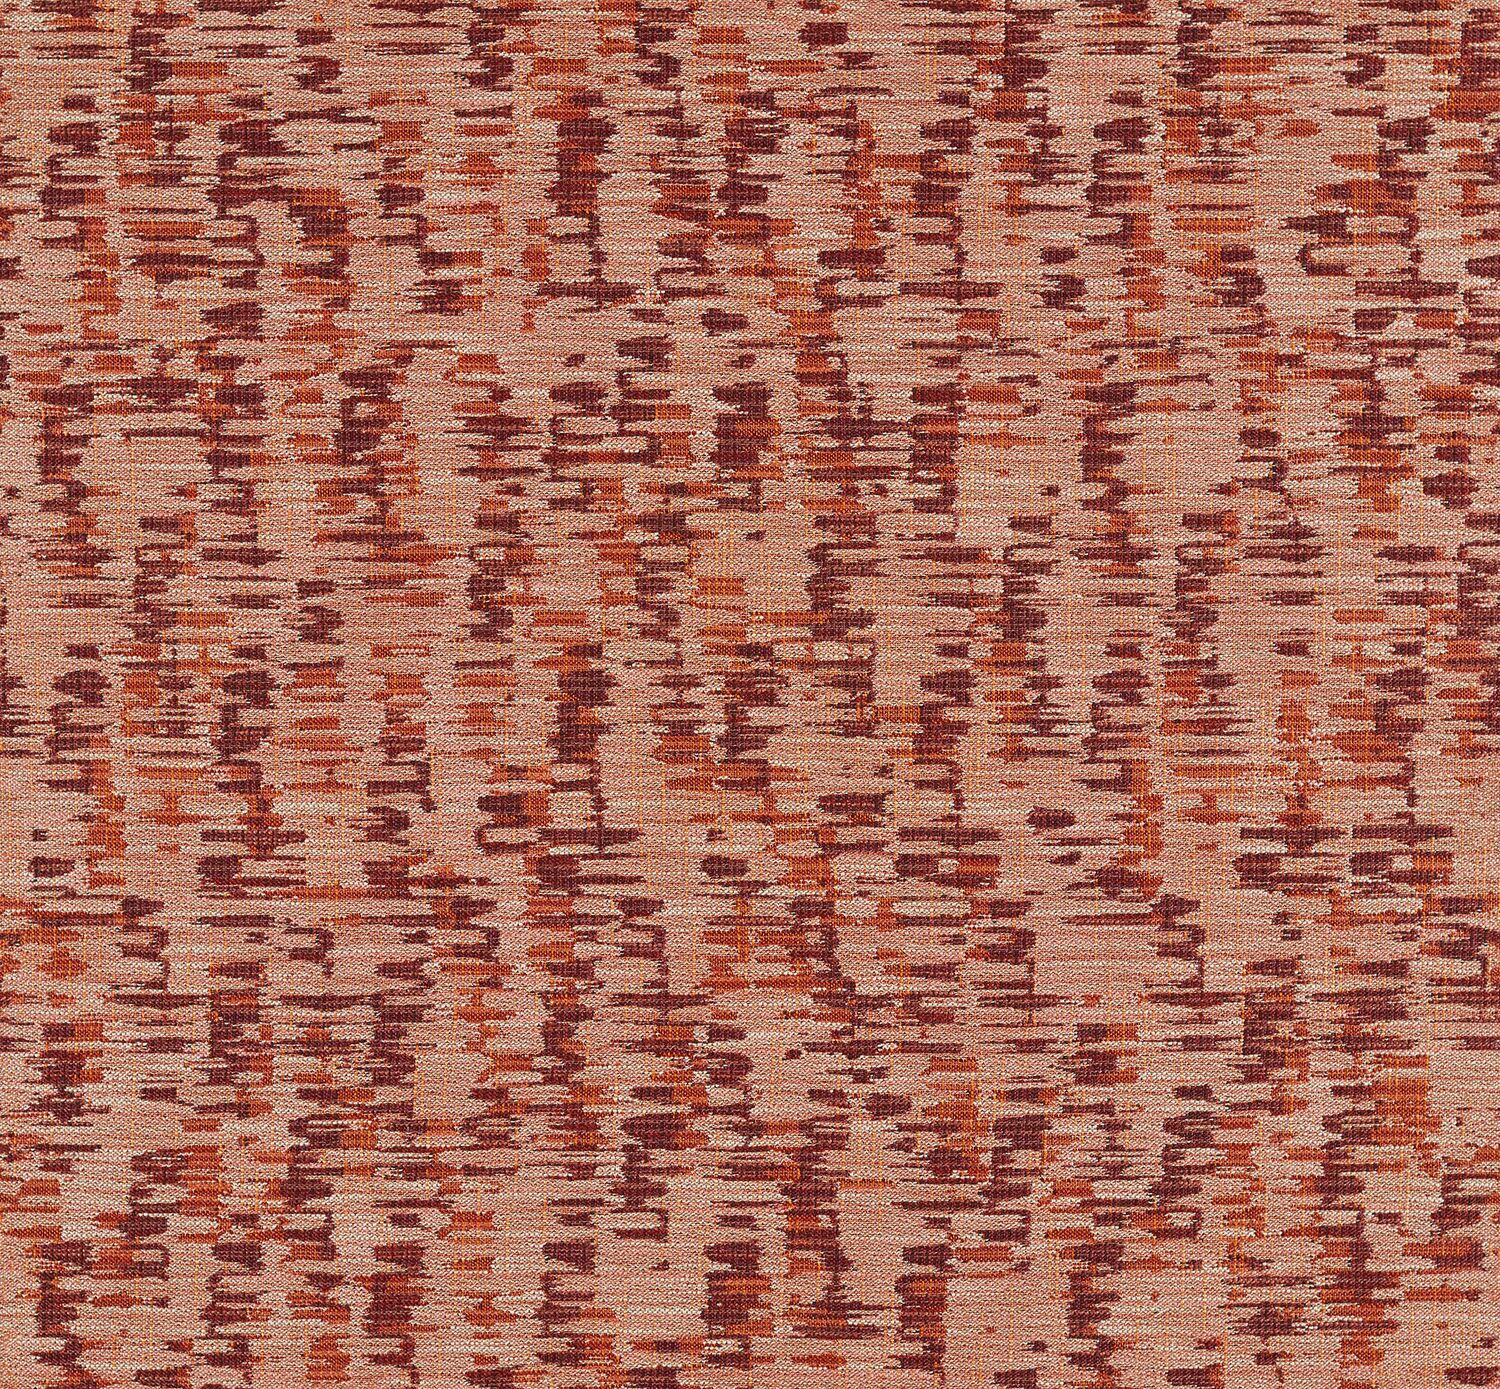 Wavefield - Red Tide - 4091 - 03 Tileable Swatches